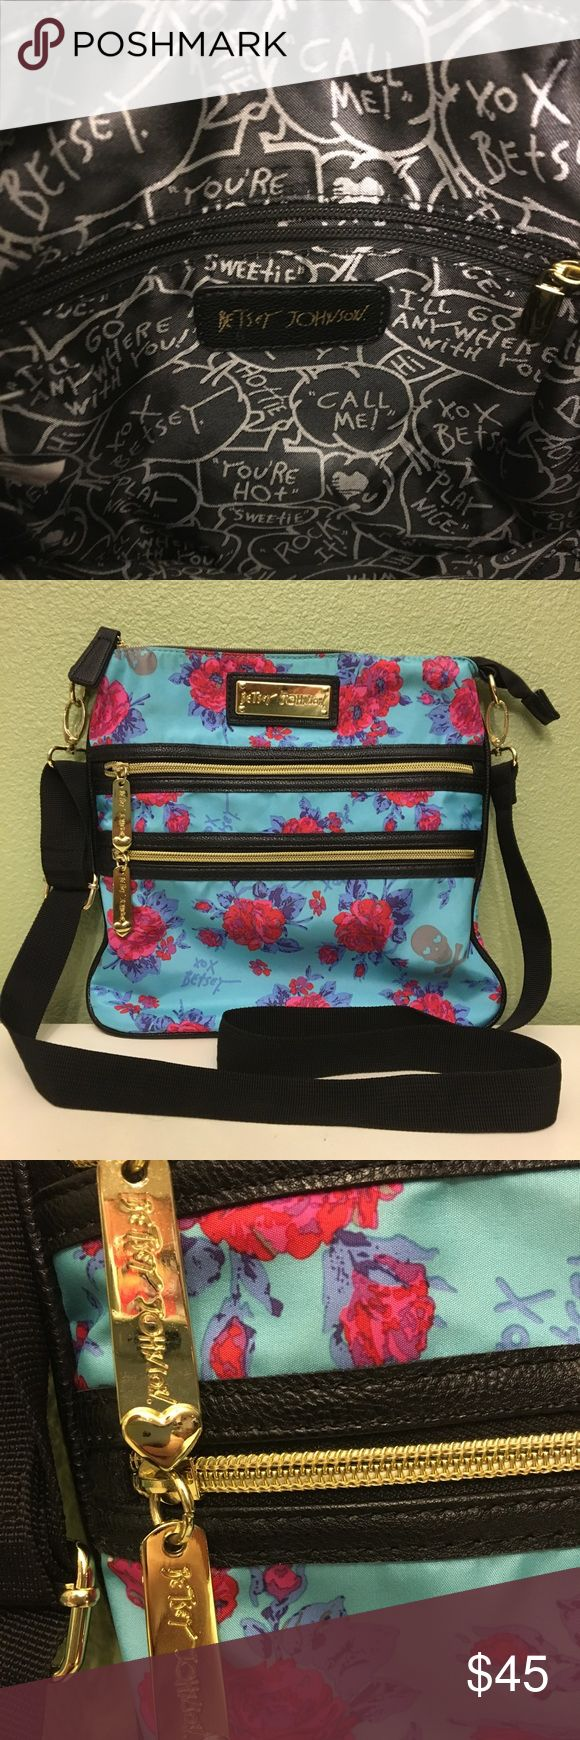 BETSEY JOHNSON cross body bag w/plastic tag tag BETSEY JOHNSON brand cross body bag. It is also adjustable and be a shoulder bag if you desire. It is a light blue and has an assortment t or red/pink flowers, darker blue leaves, XOX BETSEY's signature and gray skull and crossbones. The front of the bag has not one but two gold zippered pockets and the inside is black with a zipper pouch on one side and two elastic pockets on the opposite.  The plastic tag holder is still attached but the…